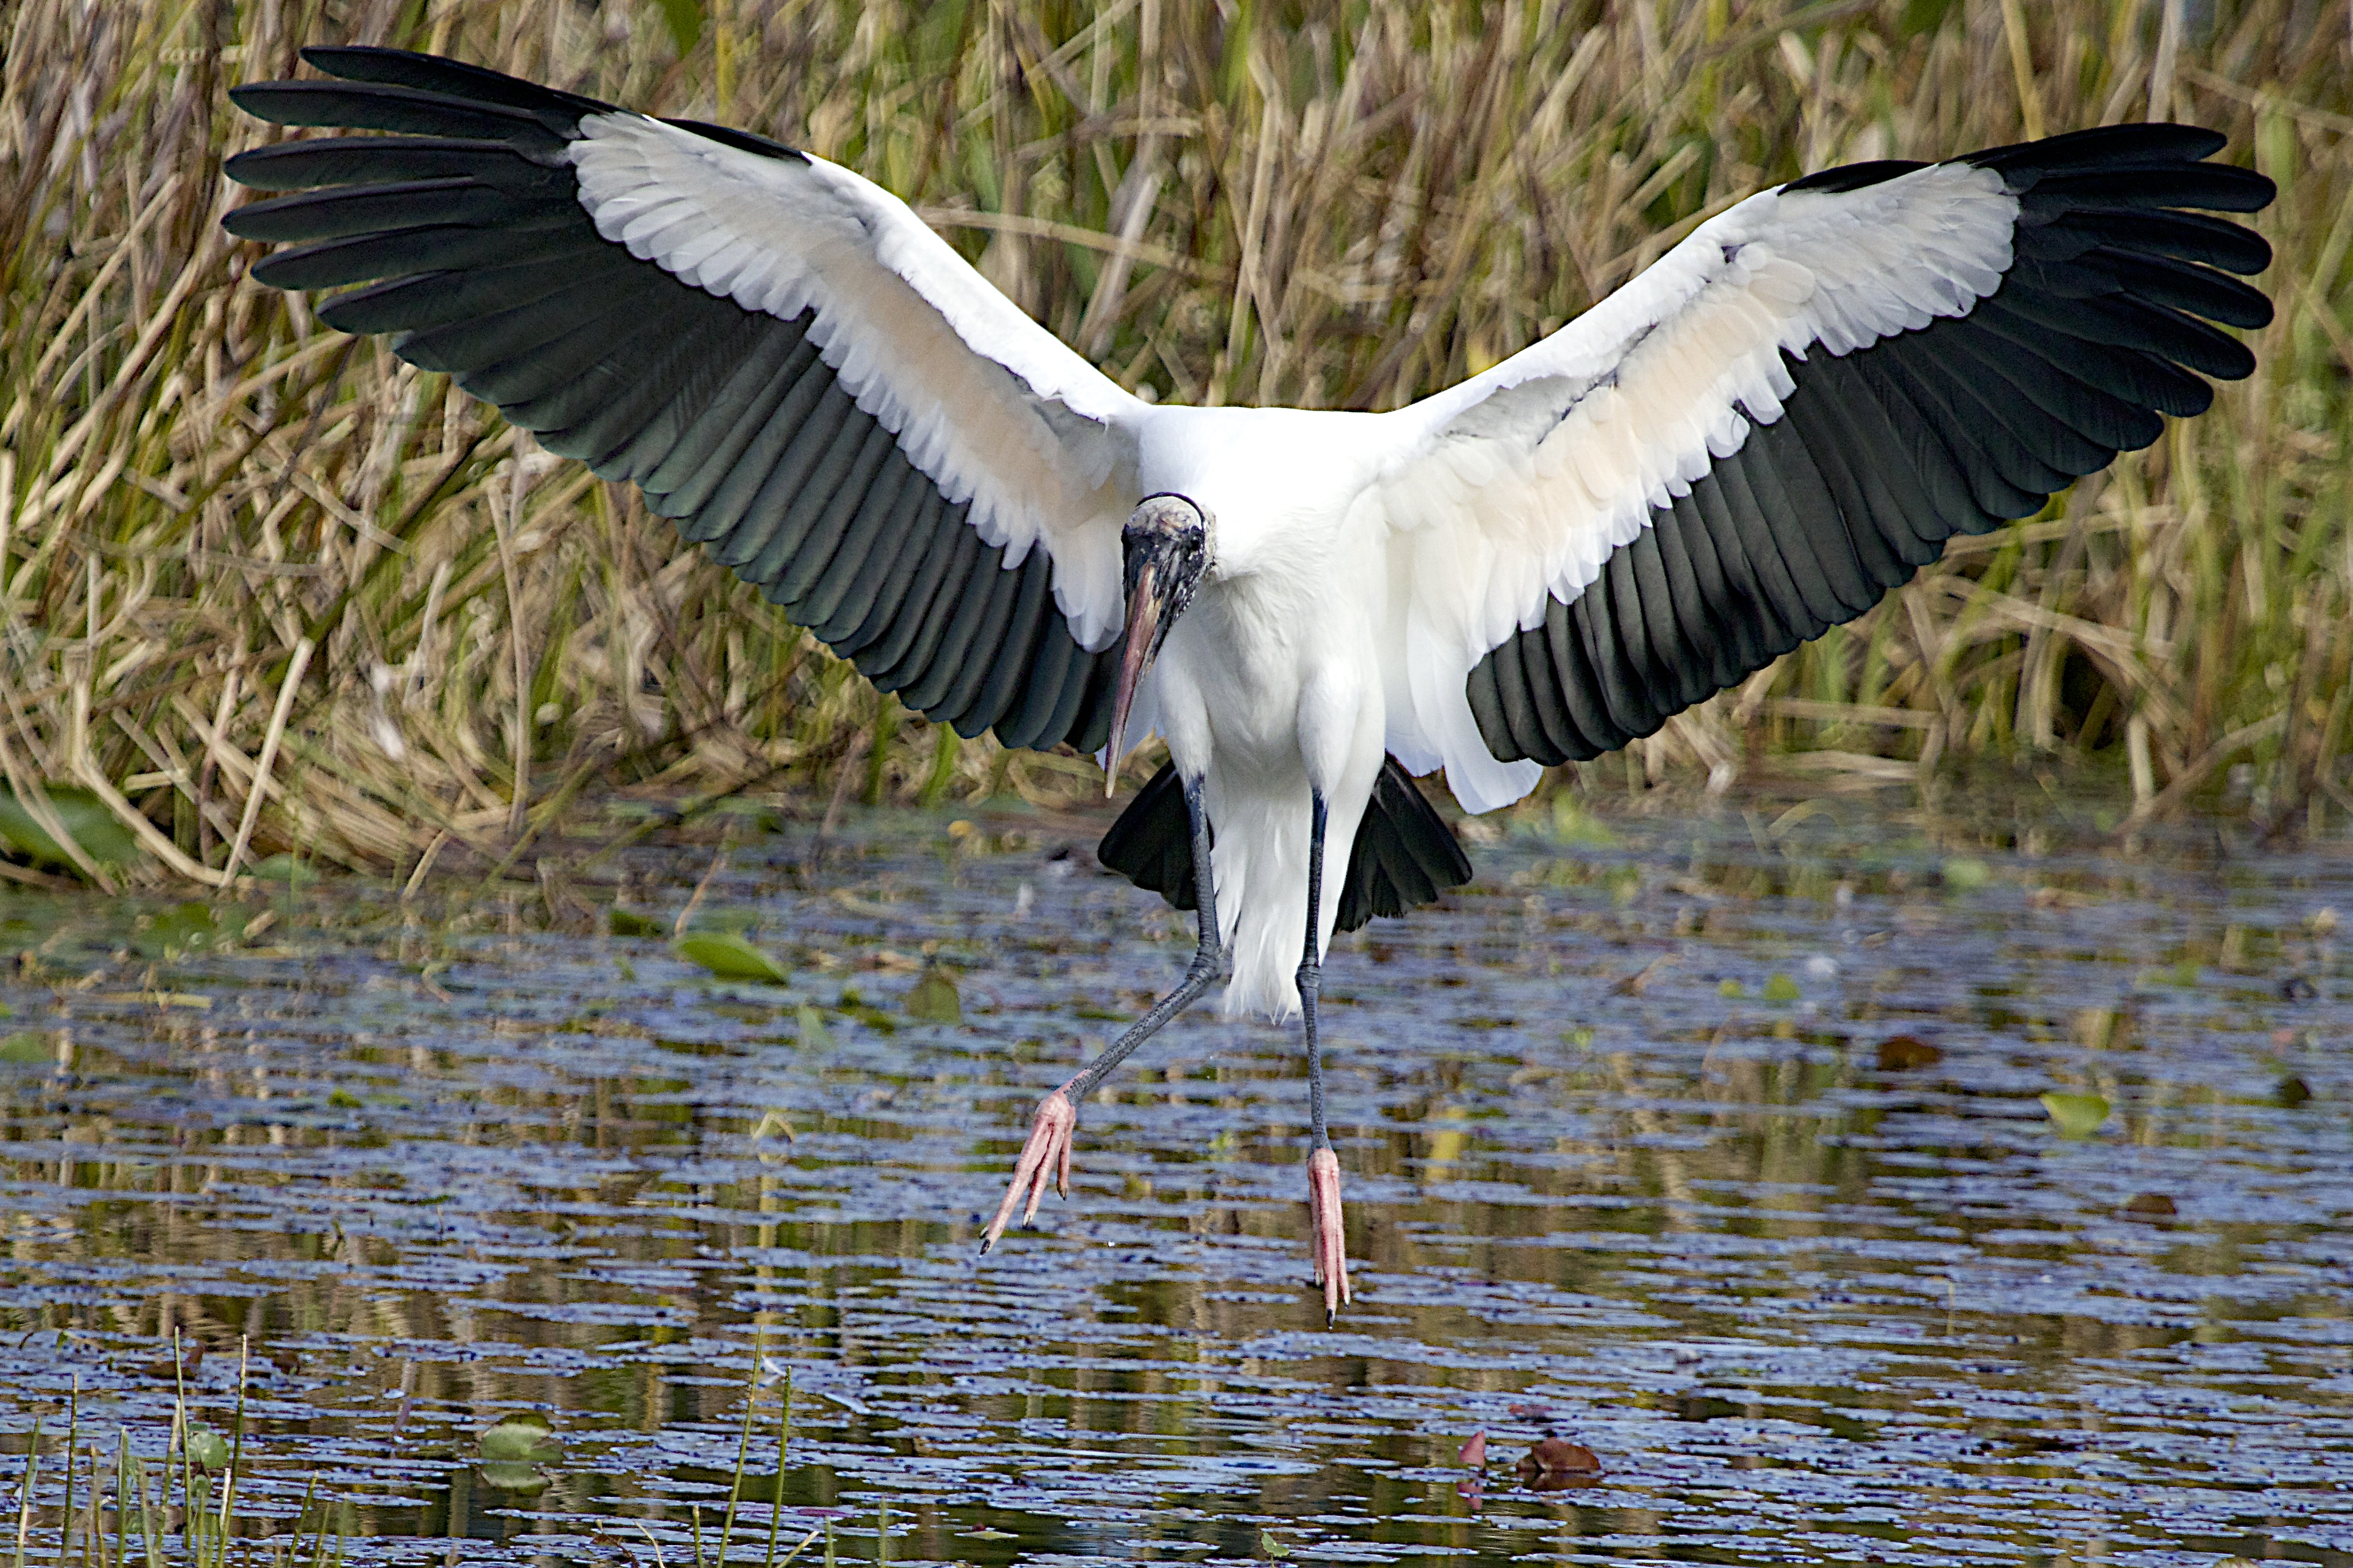 Recovering Wood Stork Down Listed From Endangered To